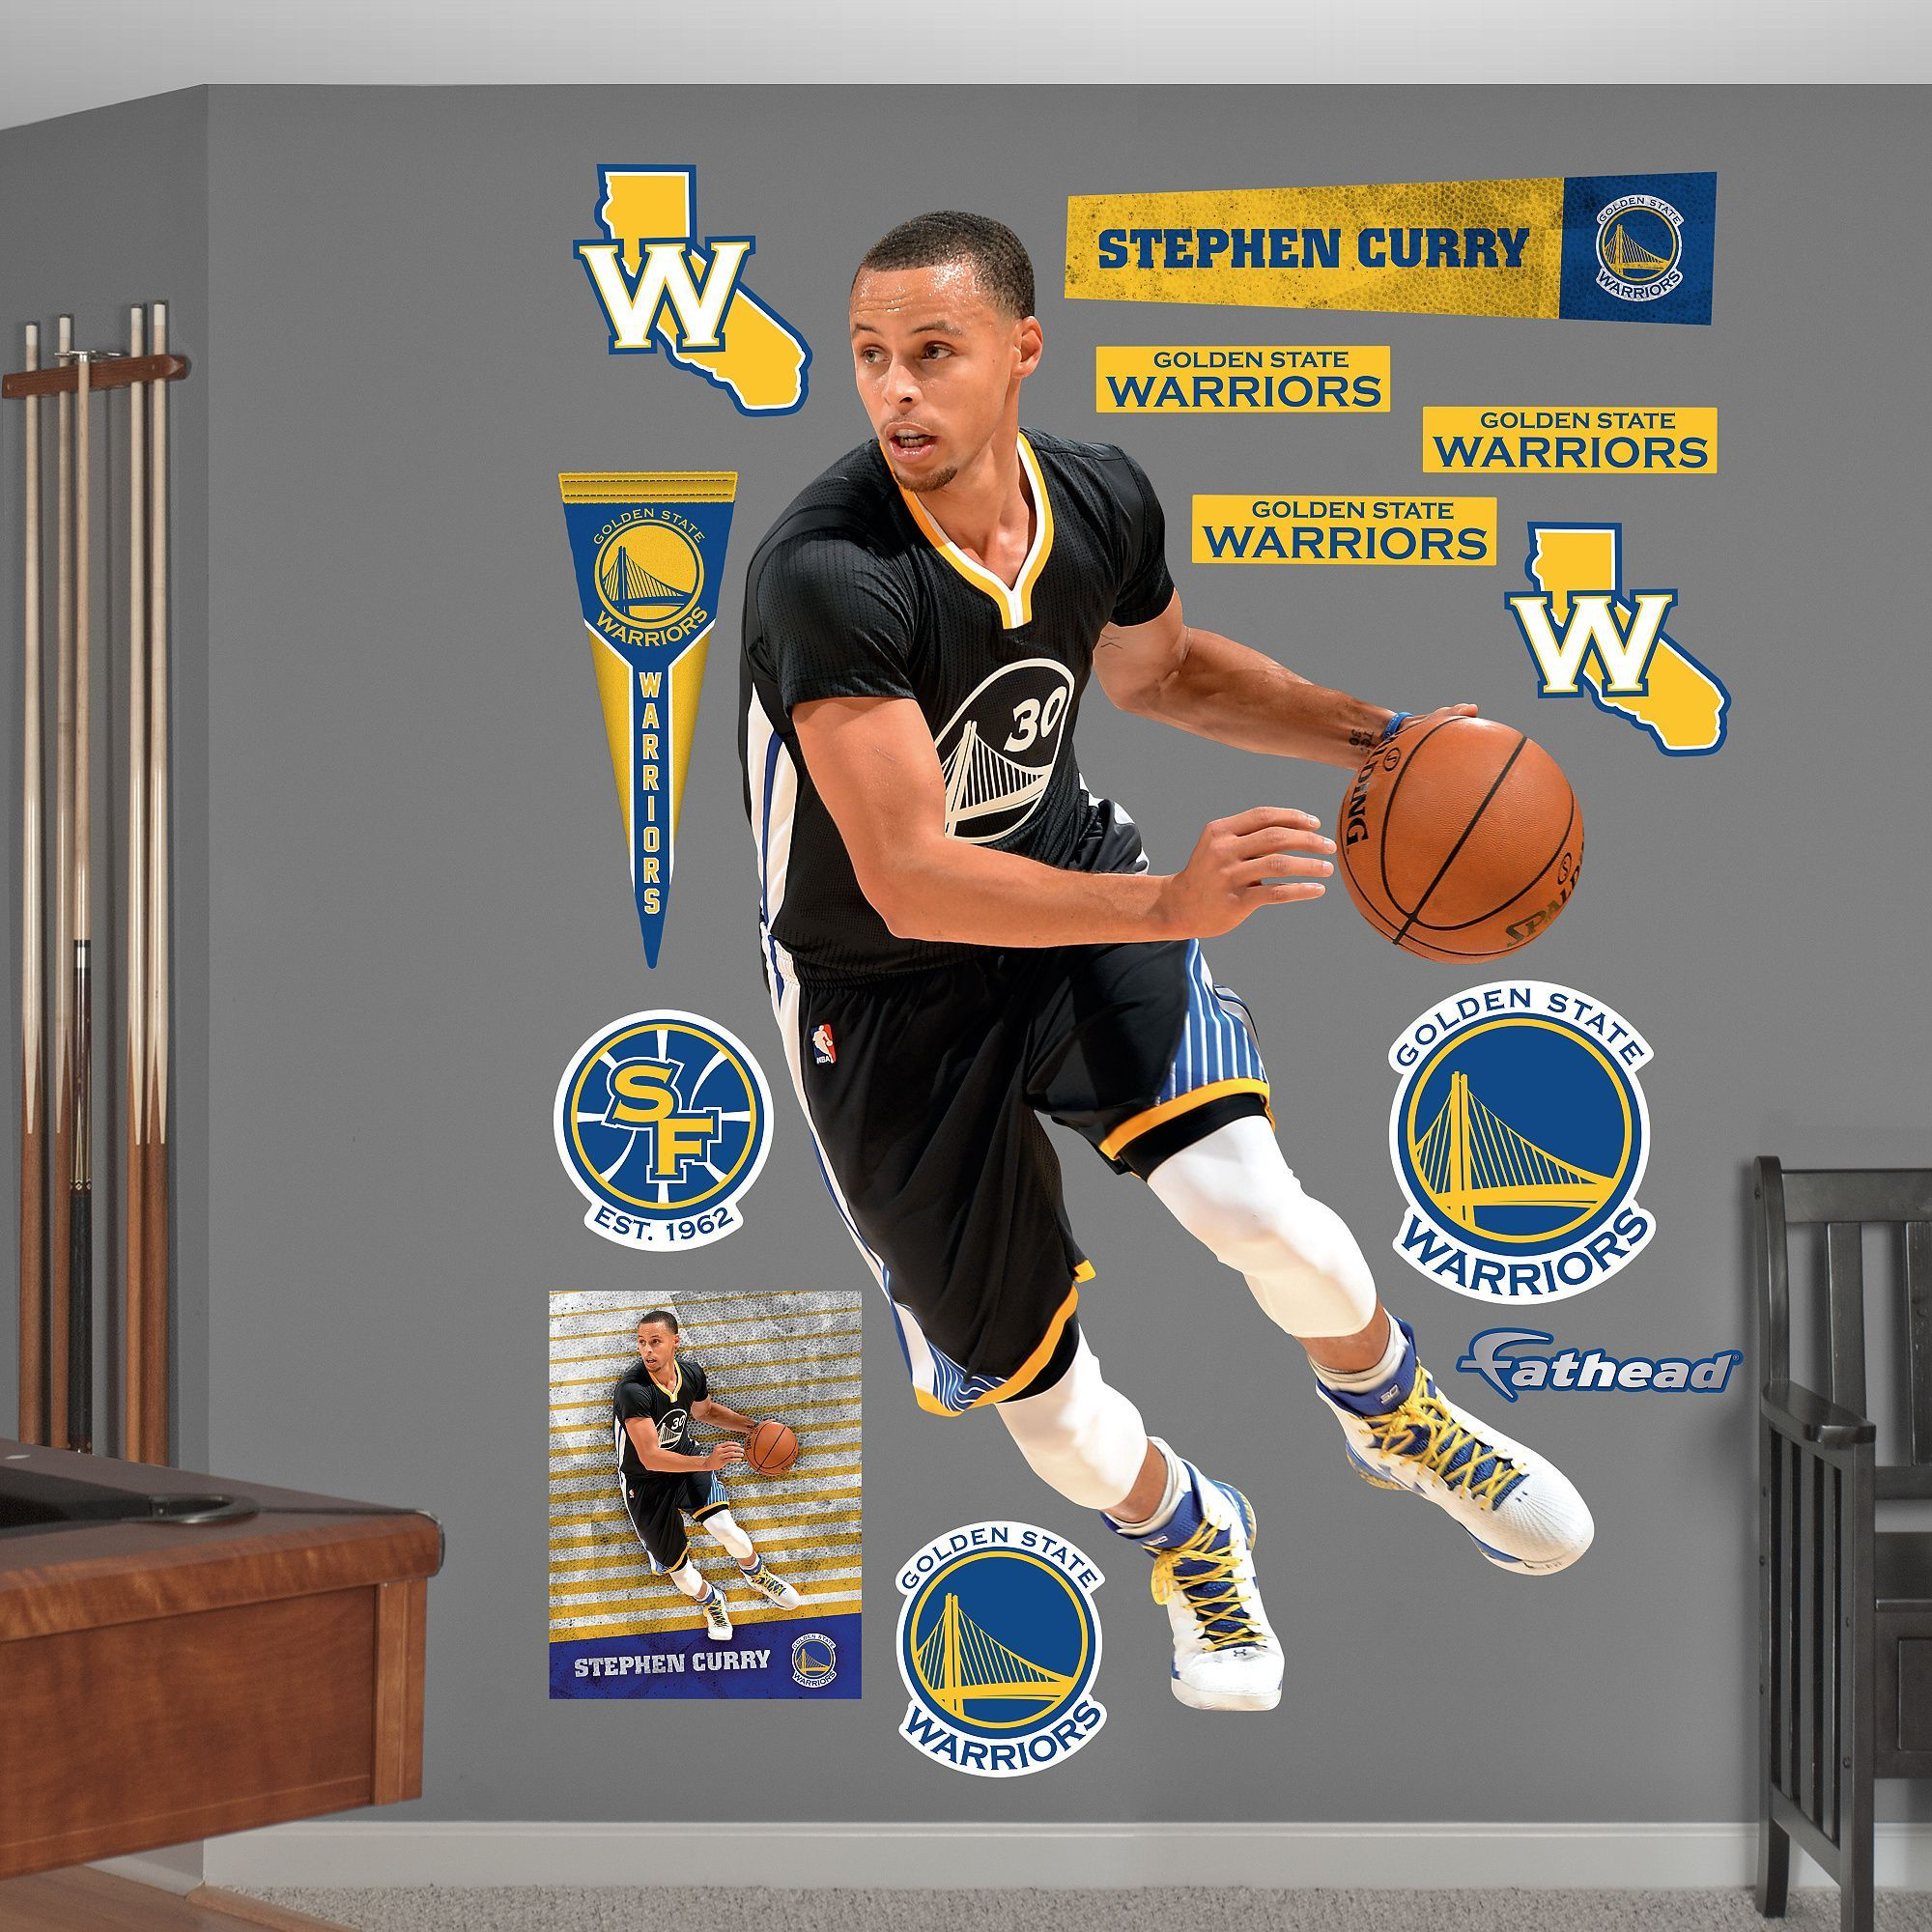 Fathead realg wall decals are hi definition action images that big wall decals are hi definition action images that you stick amipublicfo Image collections